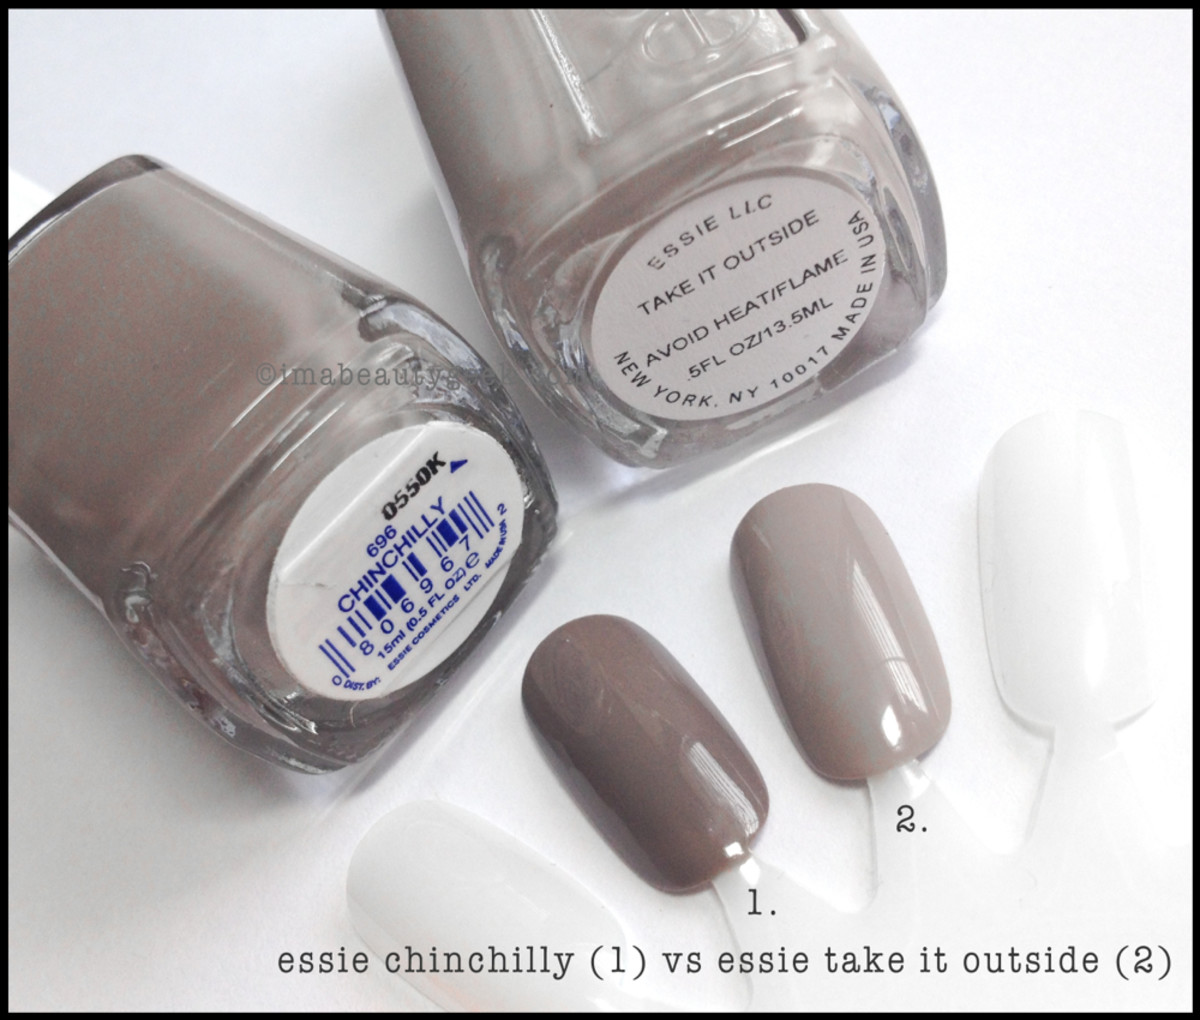 Essie Chinchilly Take it Outside Comparison Swatch